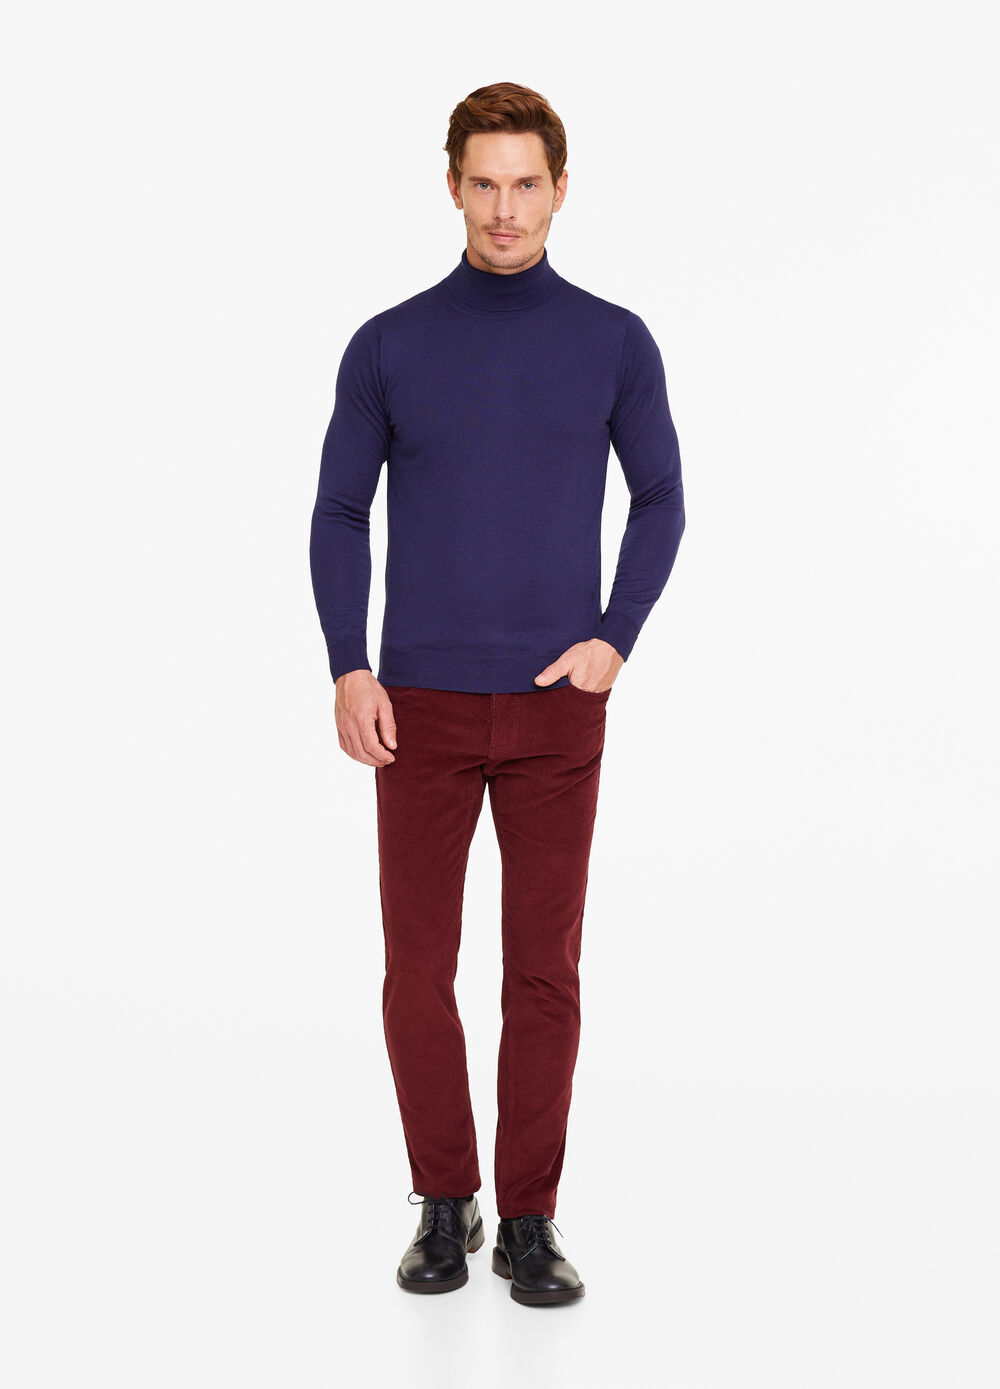 Merino wool blend pullover with high neck